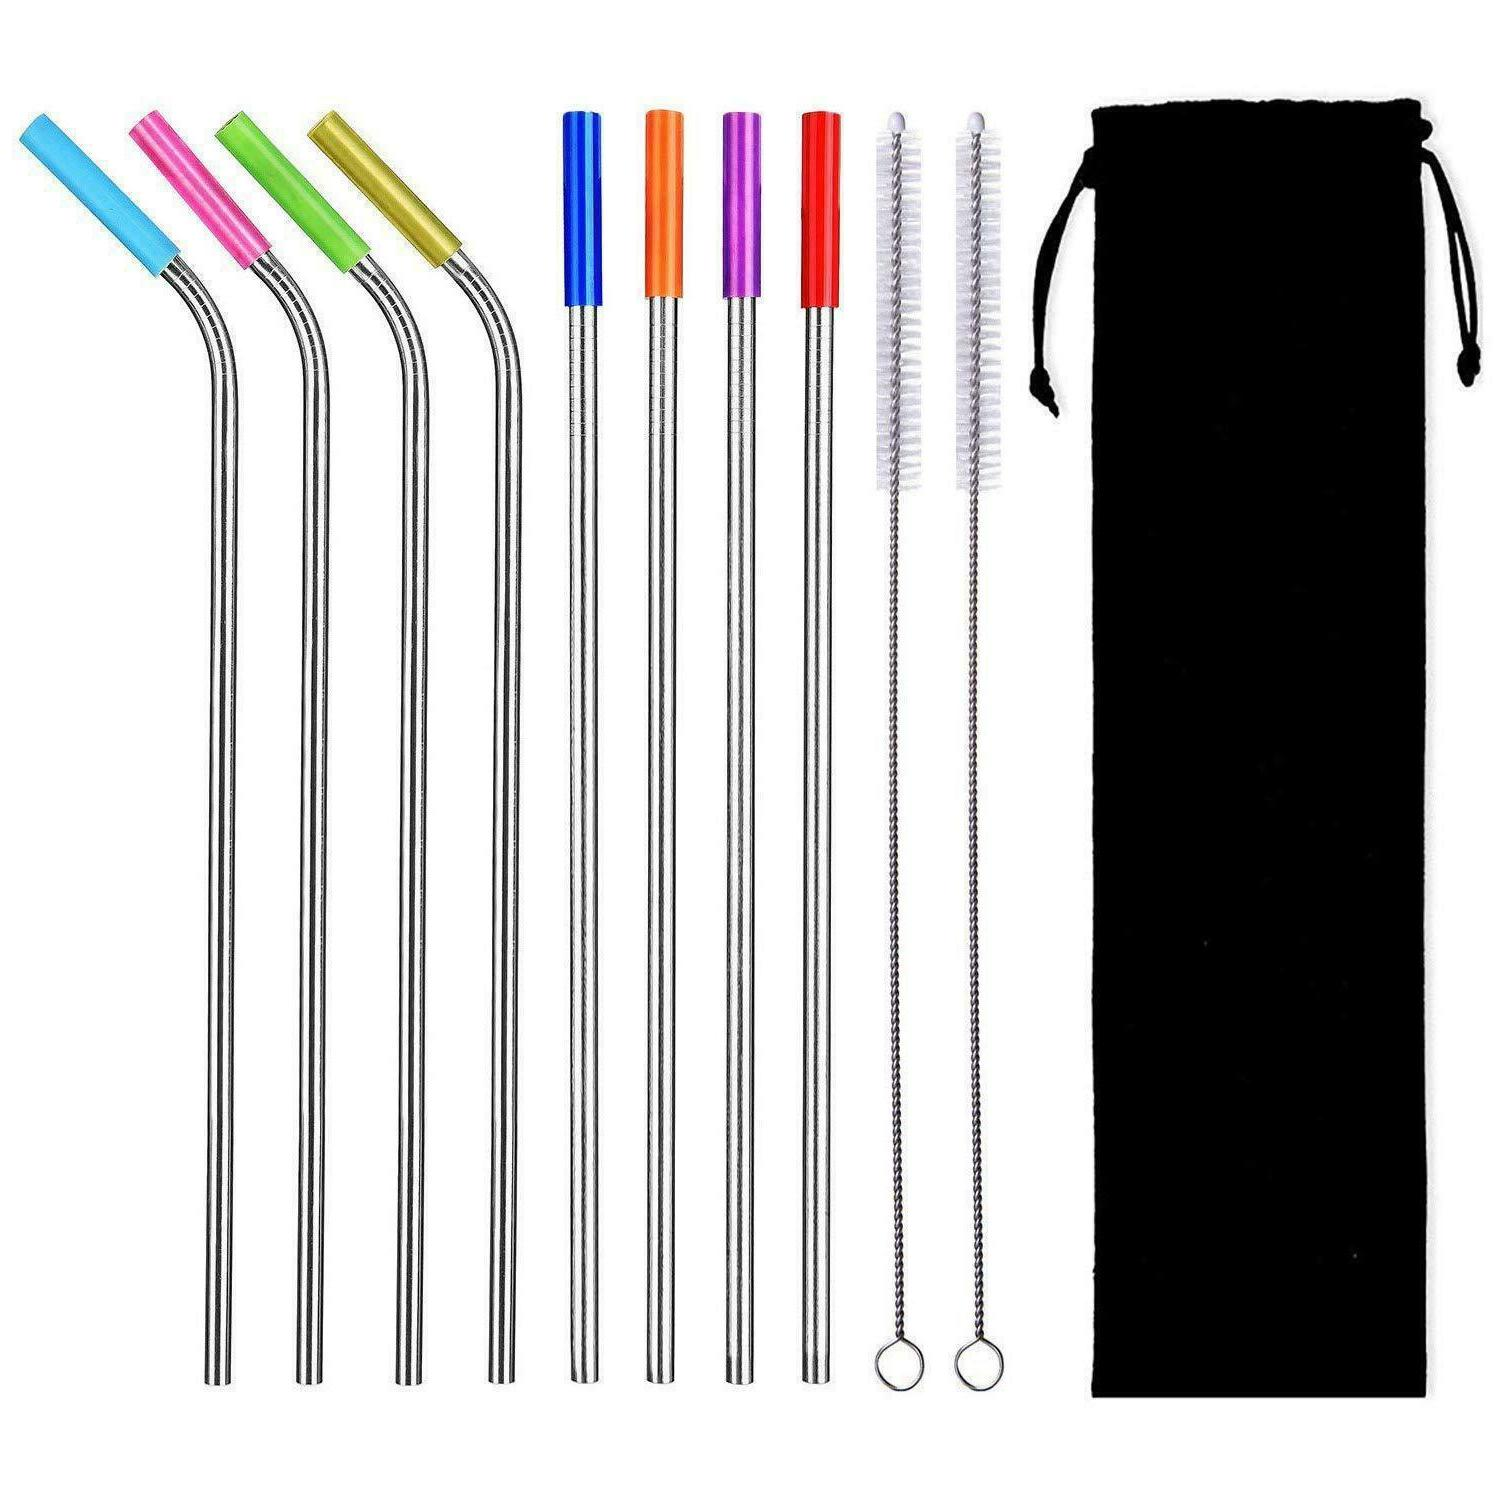 8pcs reusable stainless steel drinking straws w